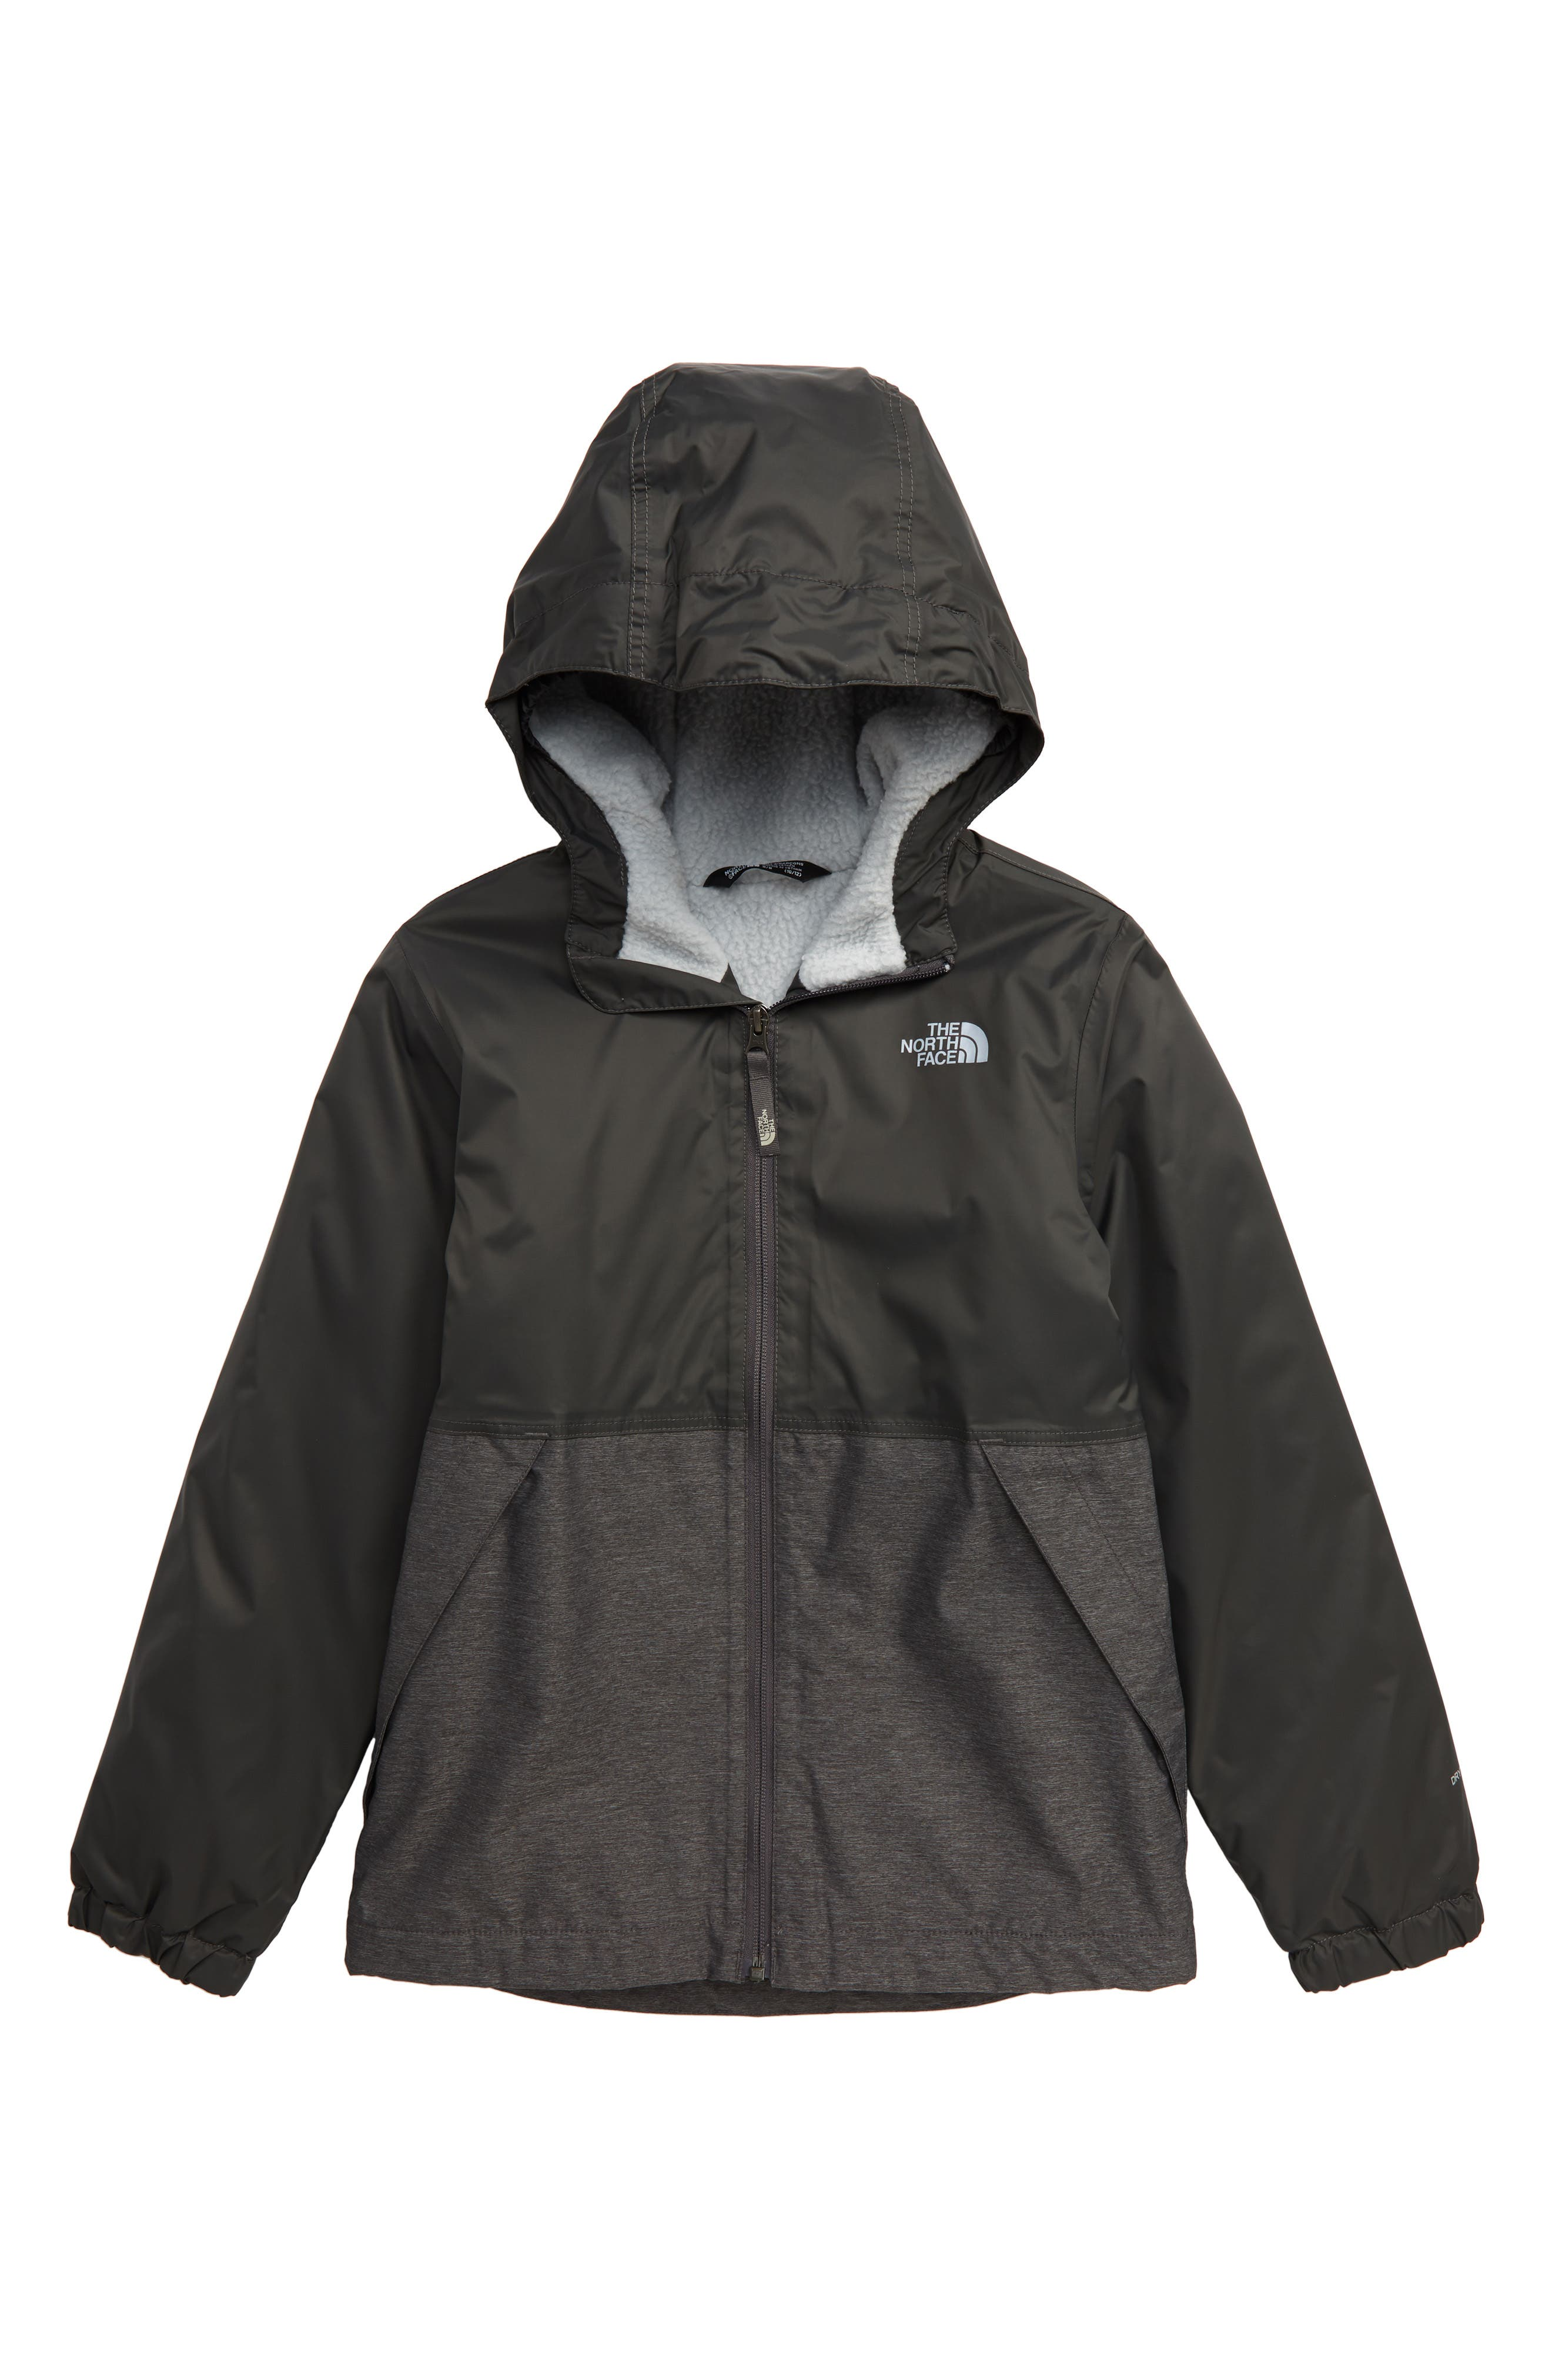 Boys The North Face Warm Storm Hooded Waterproof Jacket Size XL (1820)  Black